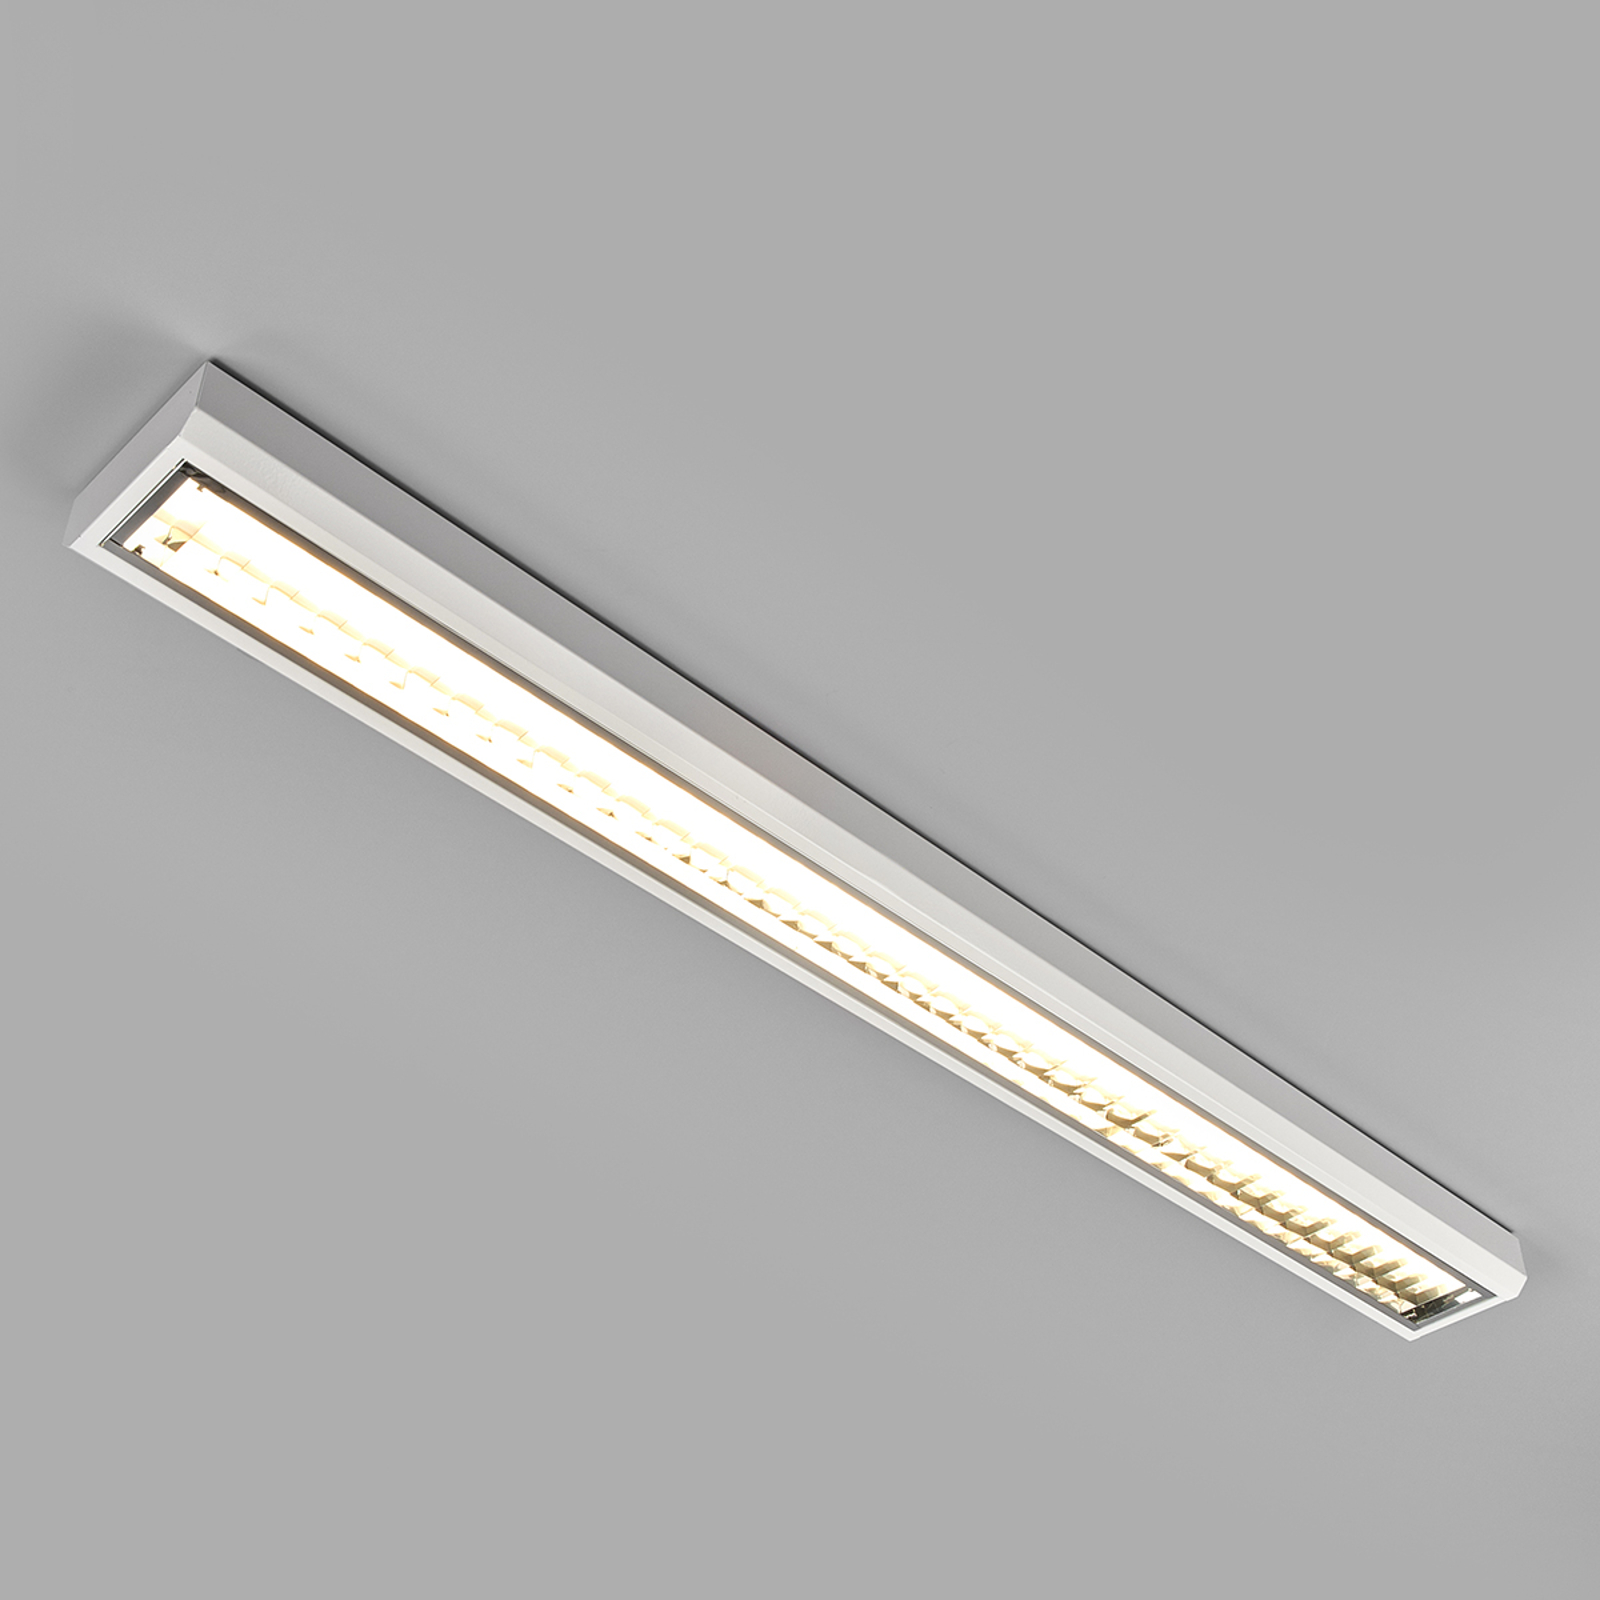 LED louvre light for offices_3002146_1